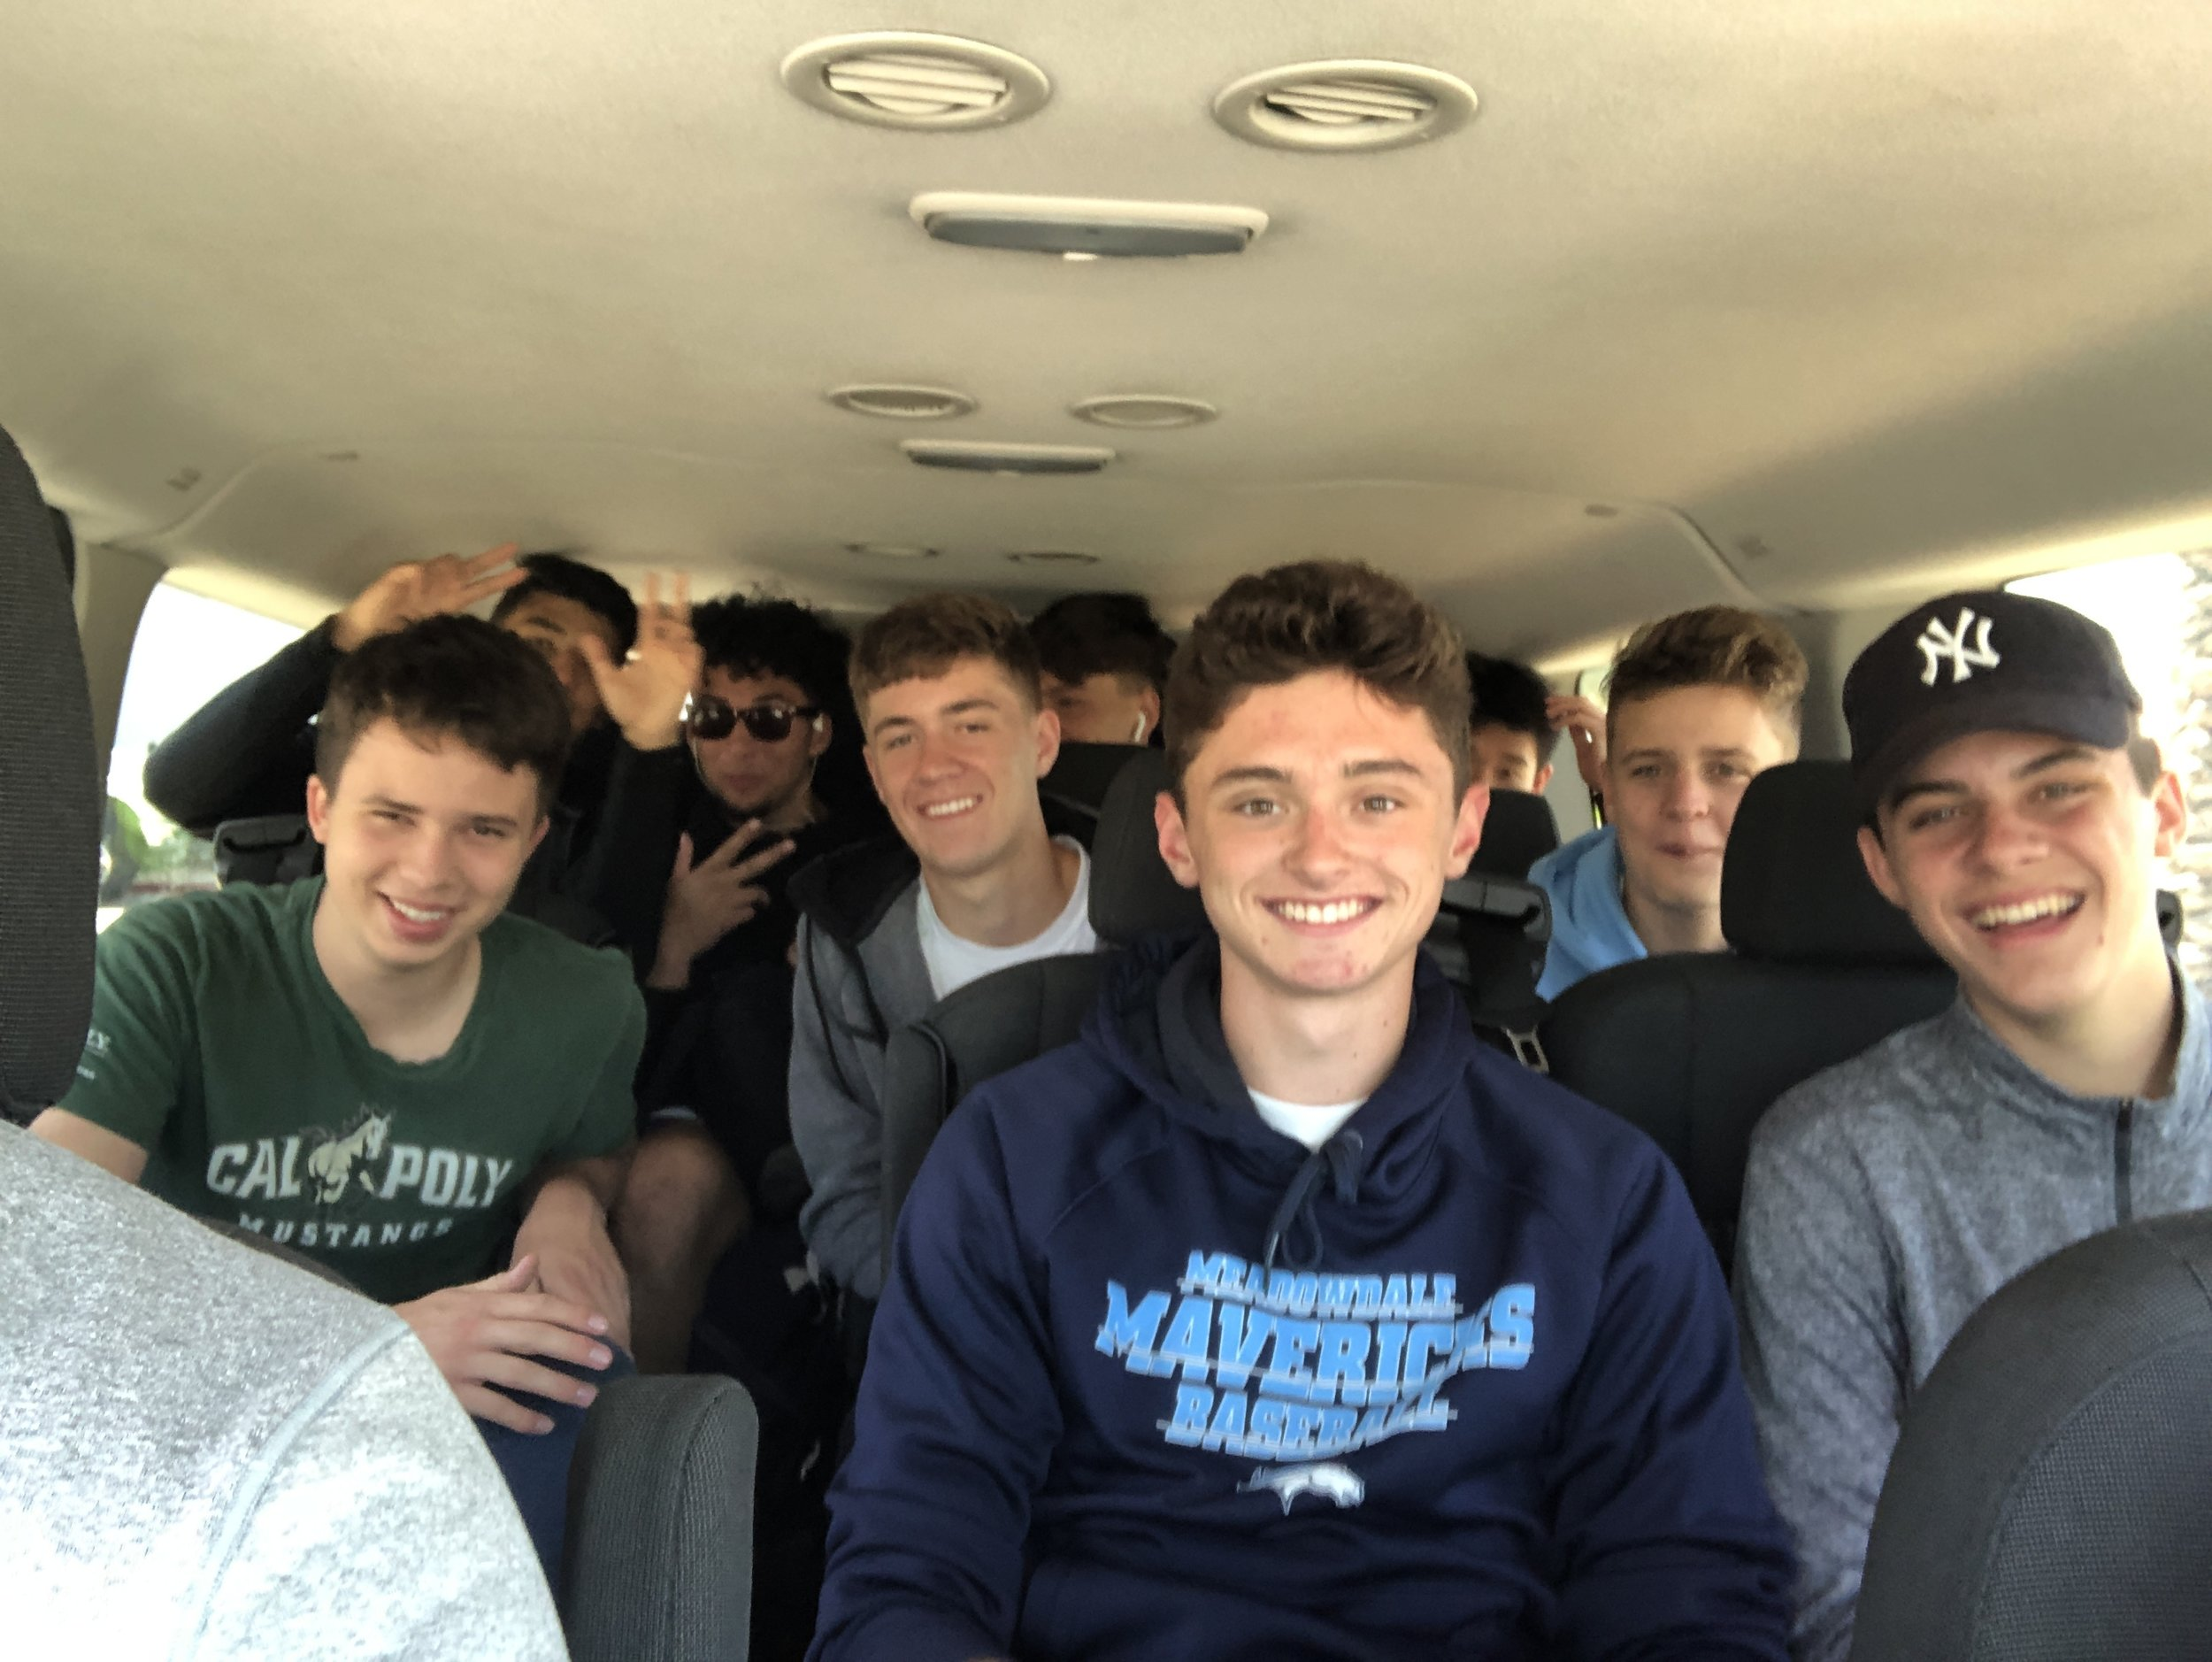 FRI: Van rides were a little cramped, but Los Mavs were all smiles.